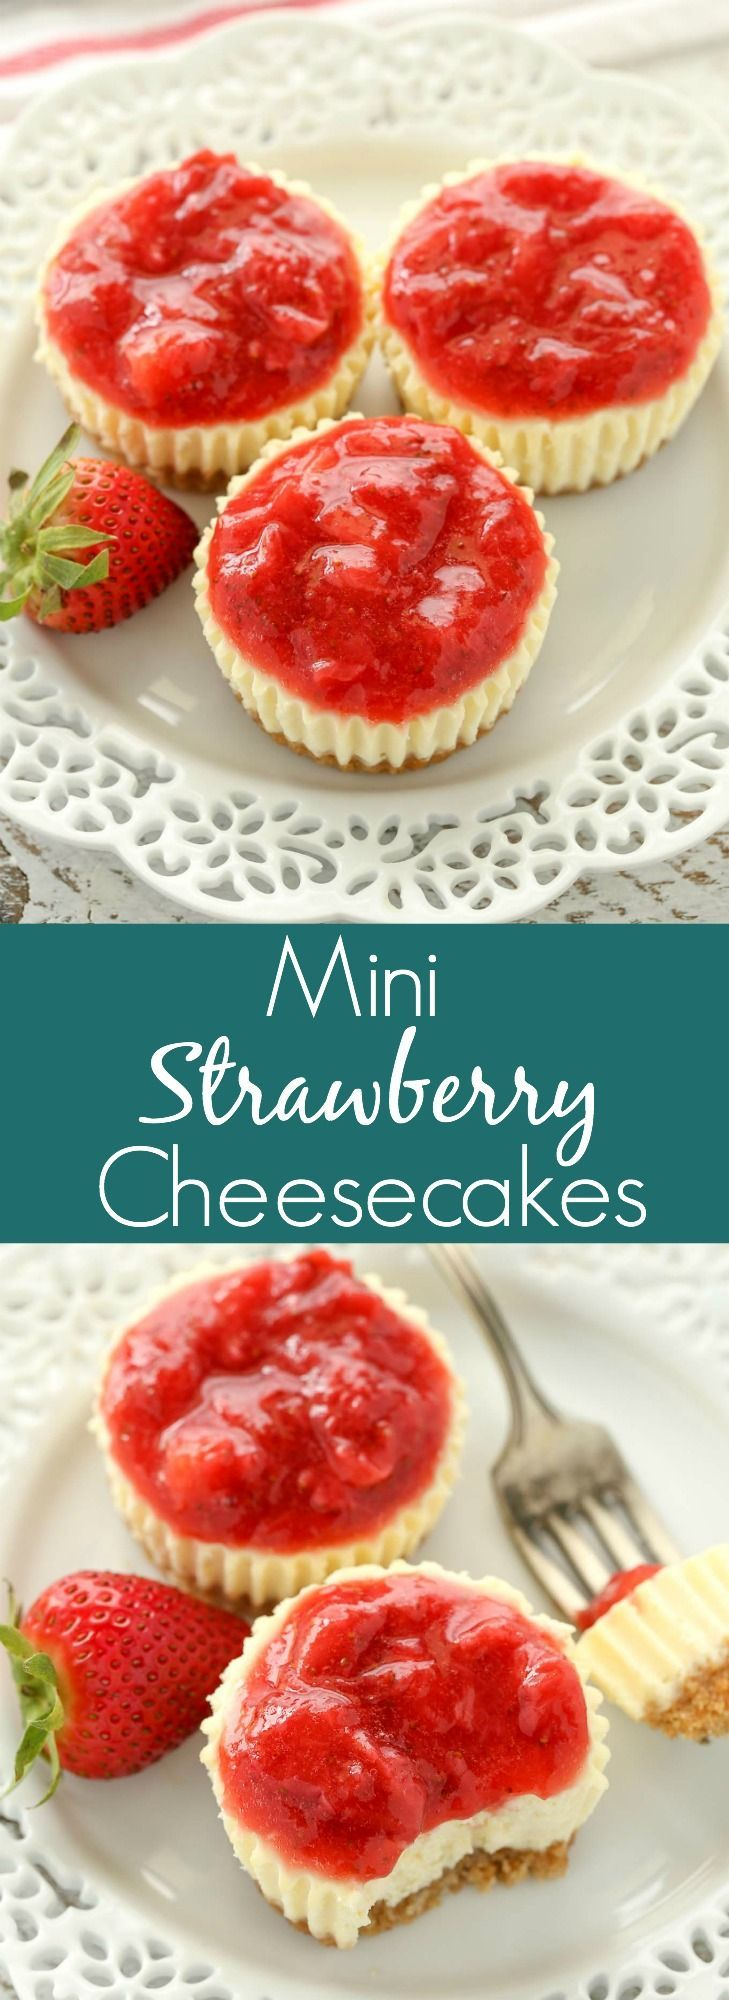 These Mini Strawberry Cheesecakes Feature An Easy Homemade